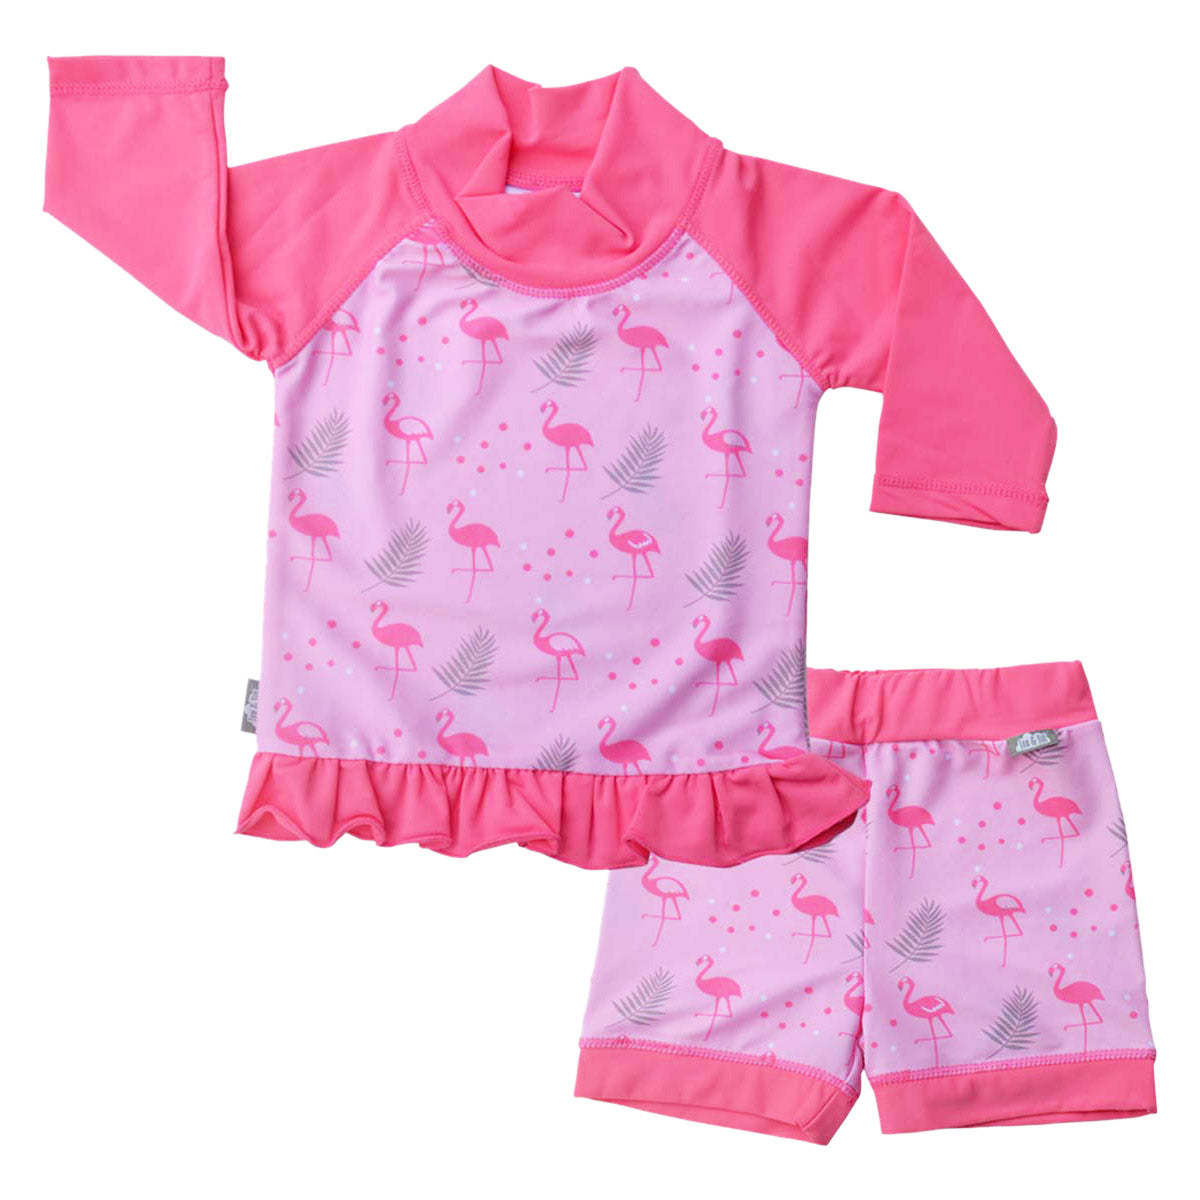 Jan & Jul  Flamingo UV Shirt Short Set